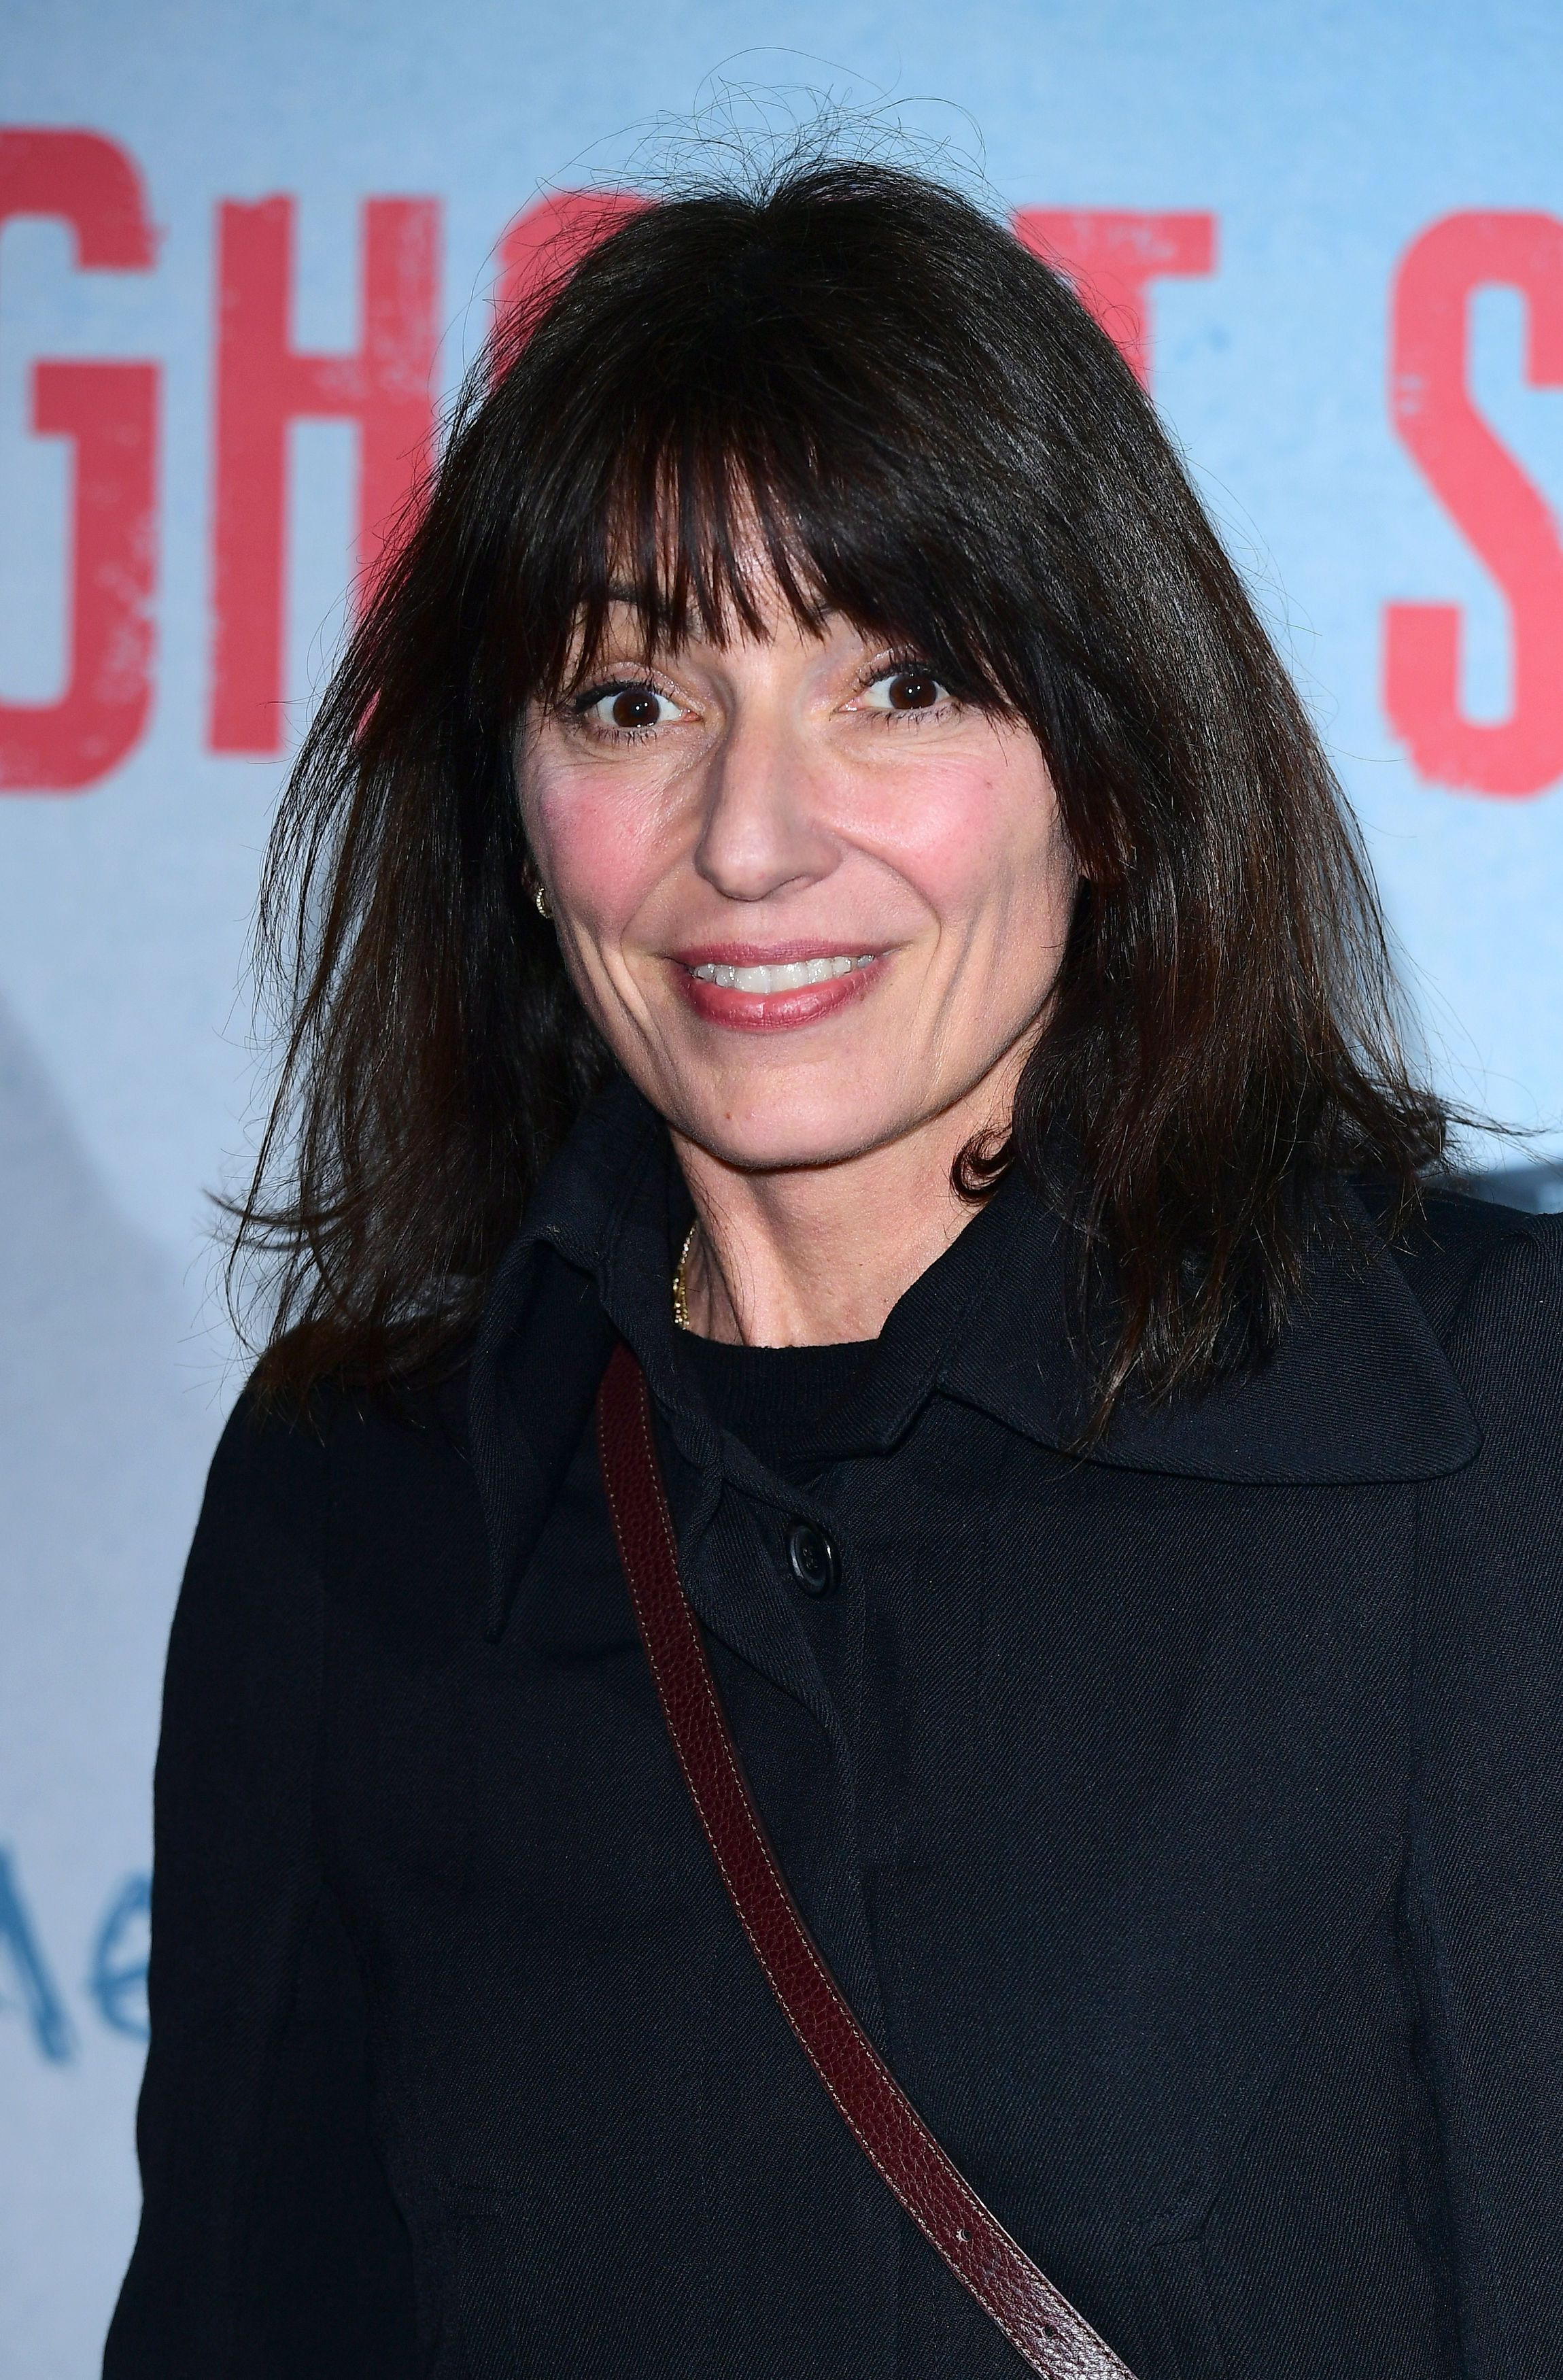 Davina McCall Says She'd Love To Do 'Strictly' After Years Of Saying